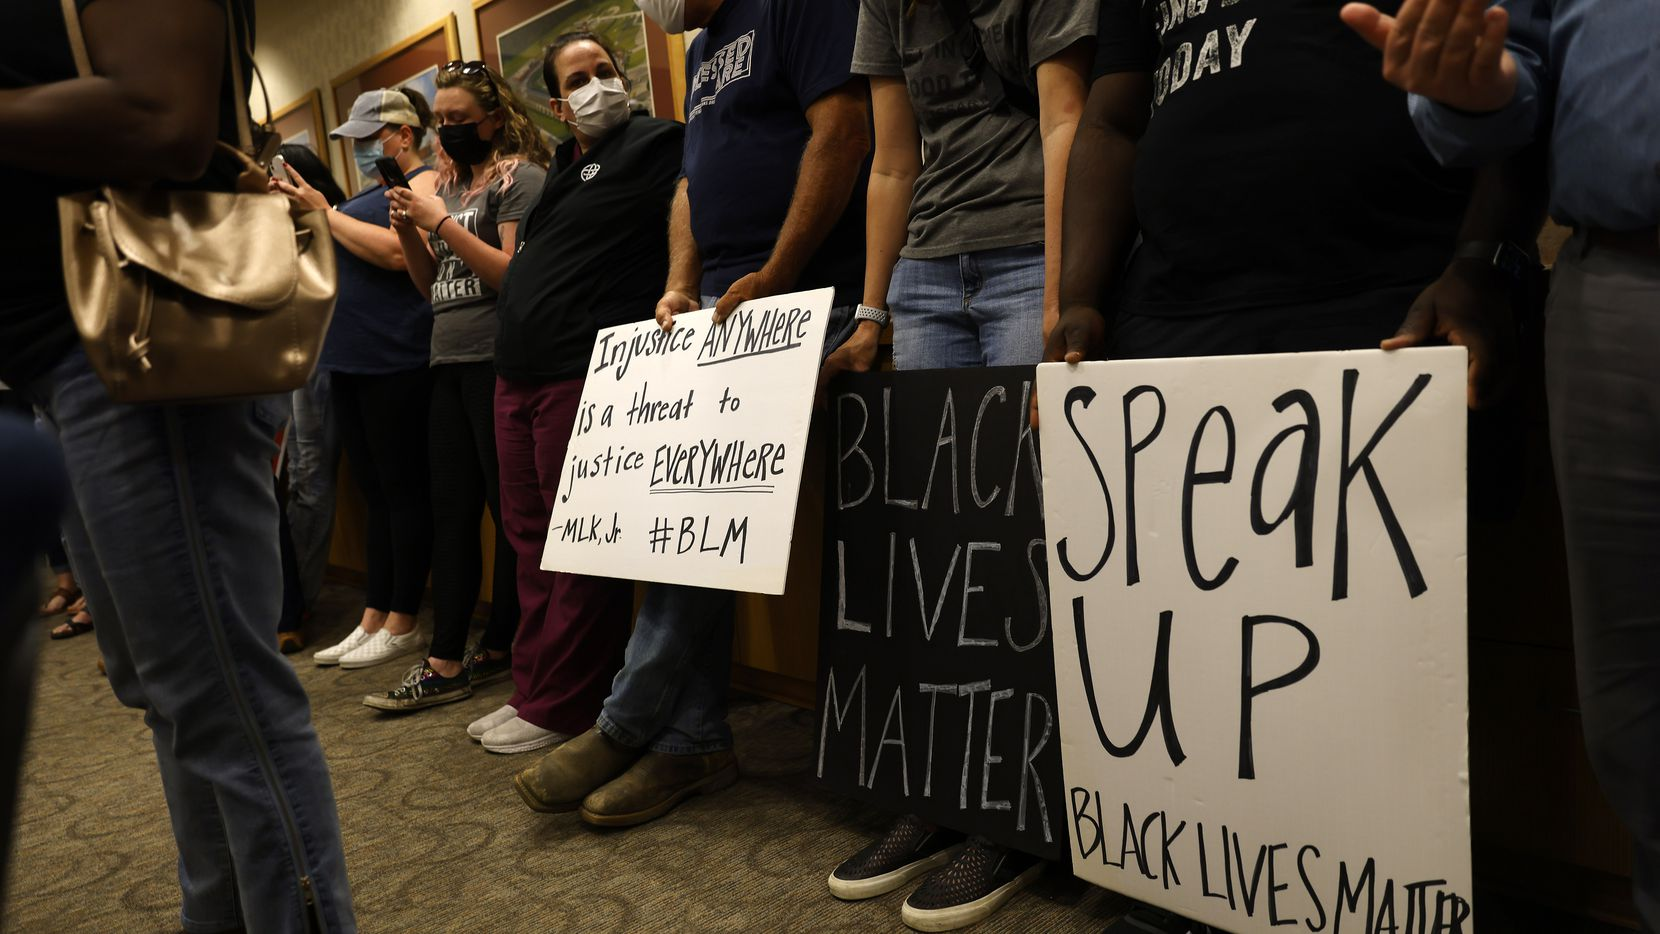 """Parents and supporters gathered in the Aledo ISD school board chamber to voice their concerns about a racist Snapchat group with multiple names, including """"Slave Trade"""" and another that included a racial slur."""